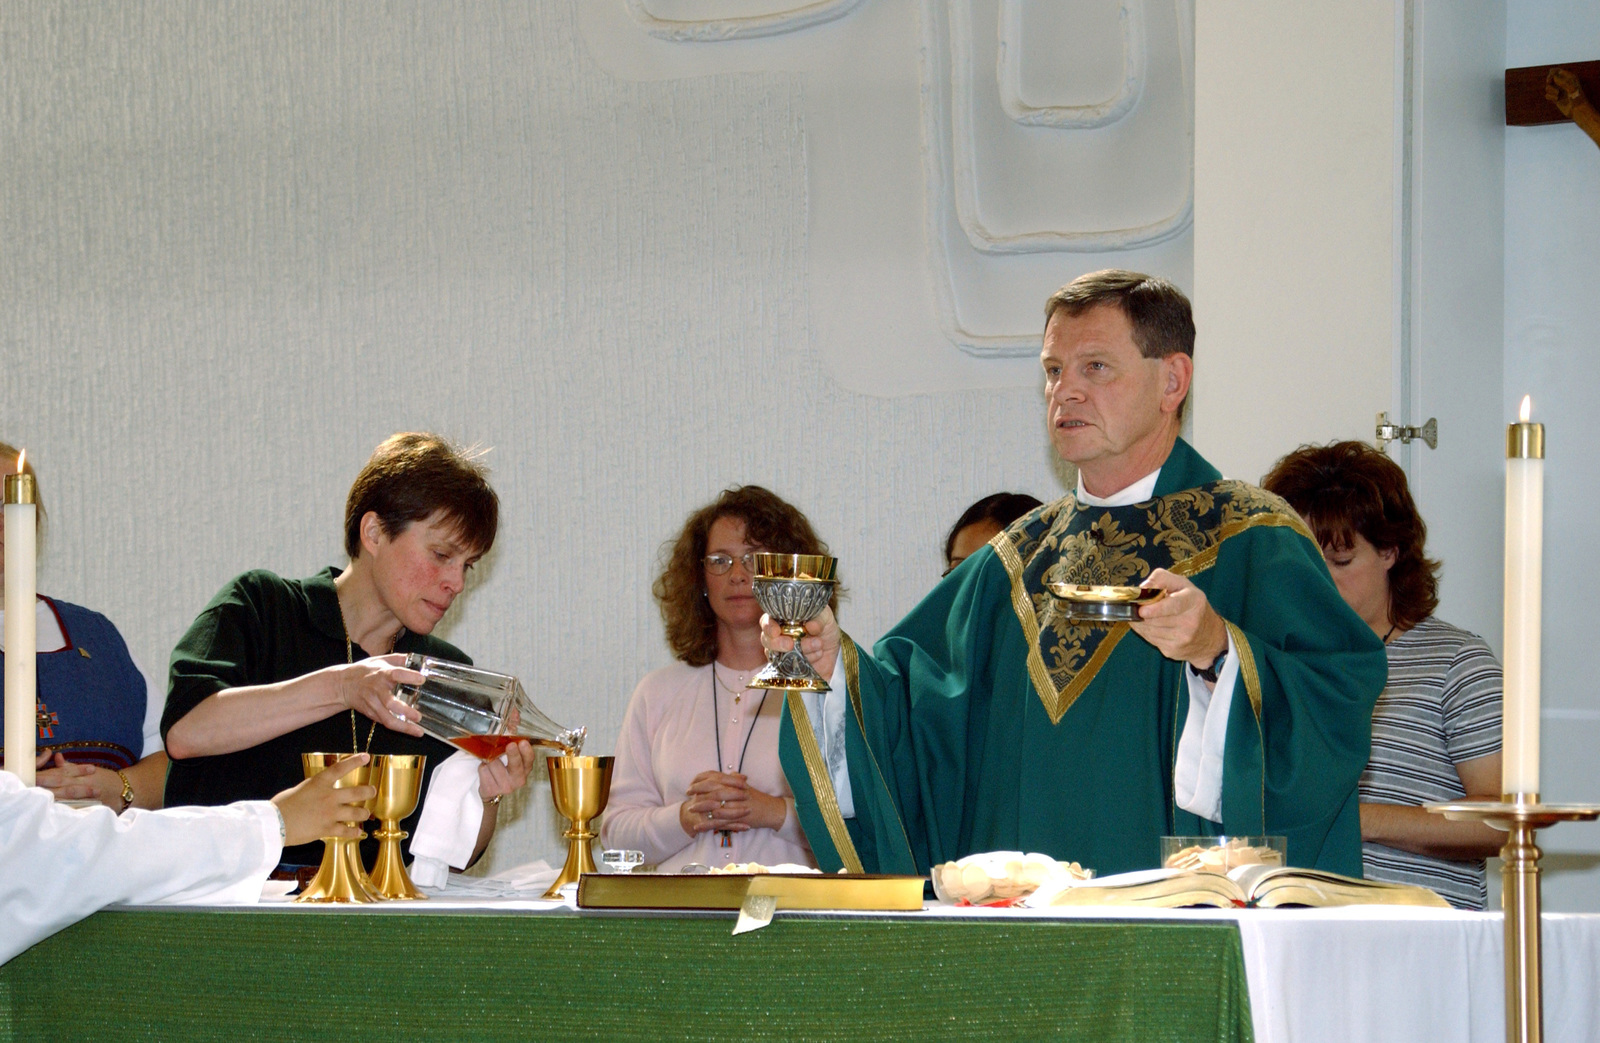 86th Airlift Wing Catholic Chaplain, Father Thomas Doyle completes